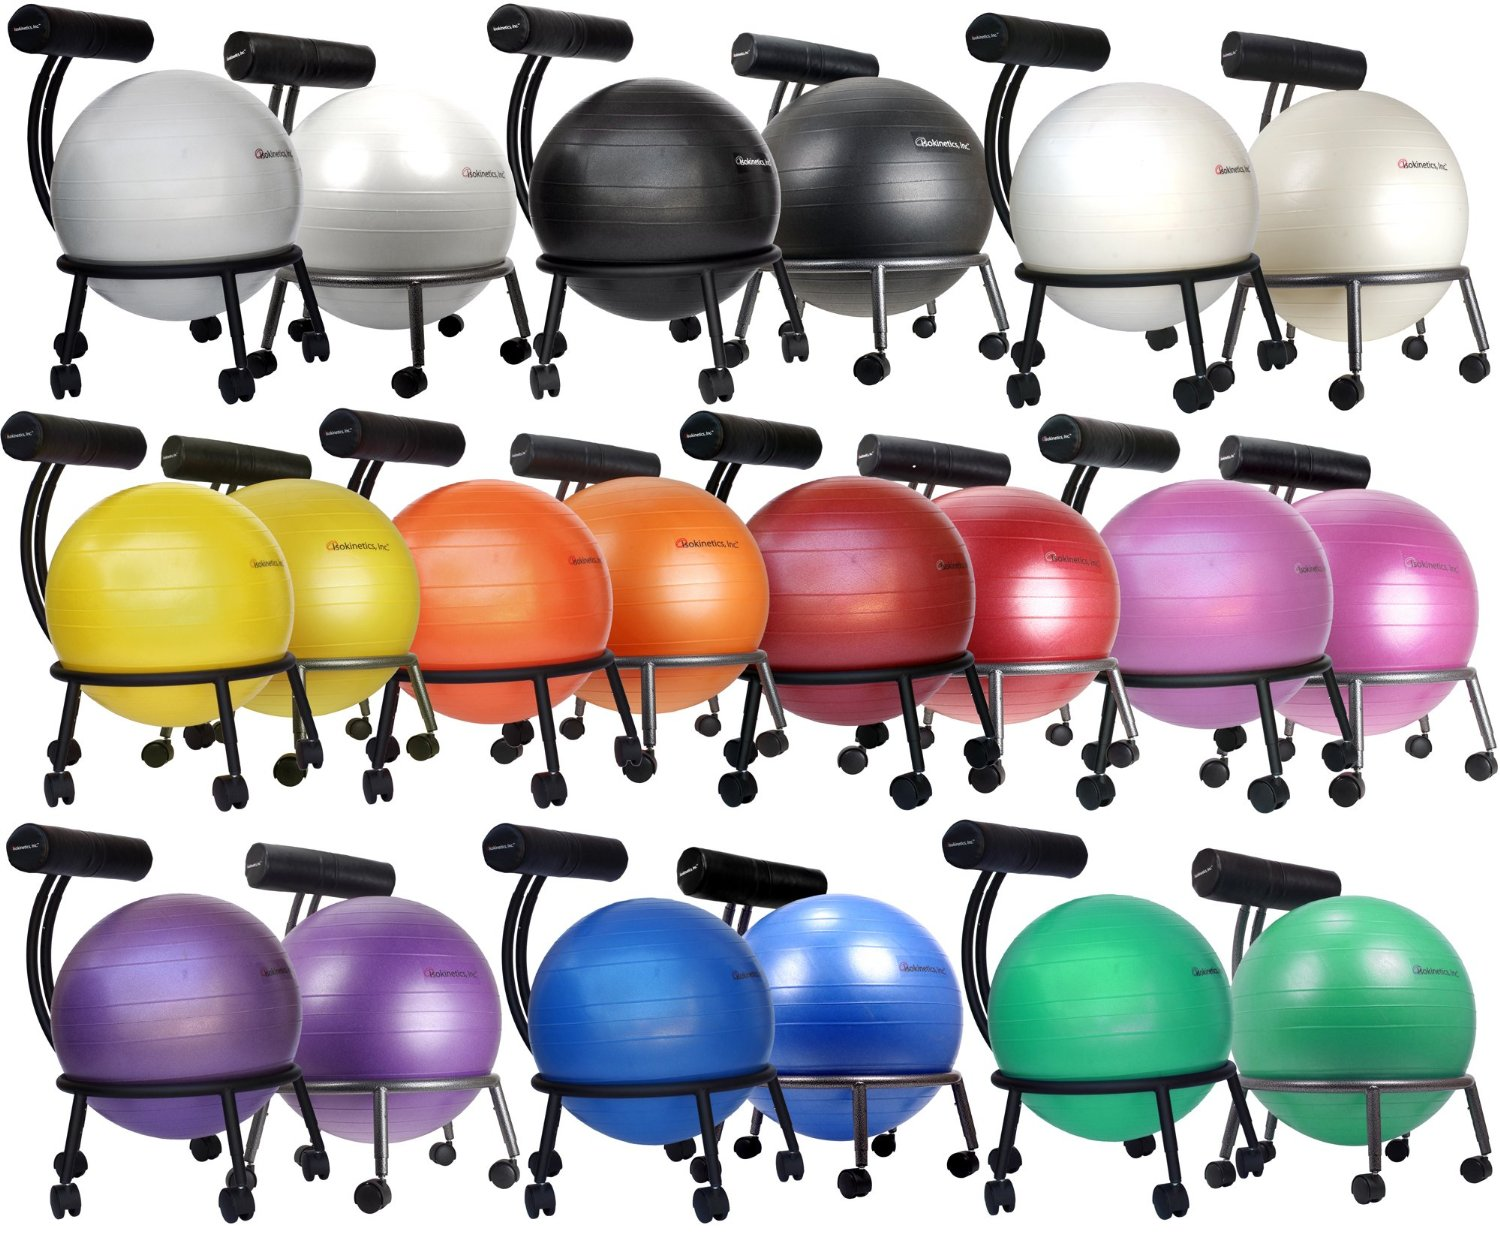 ball chair amazon covers india com isokinetics inc brand fitness silver flake on black metal frame finish exclusive 60mm 2 5 wheels adjustable base and back